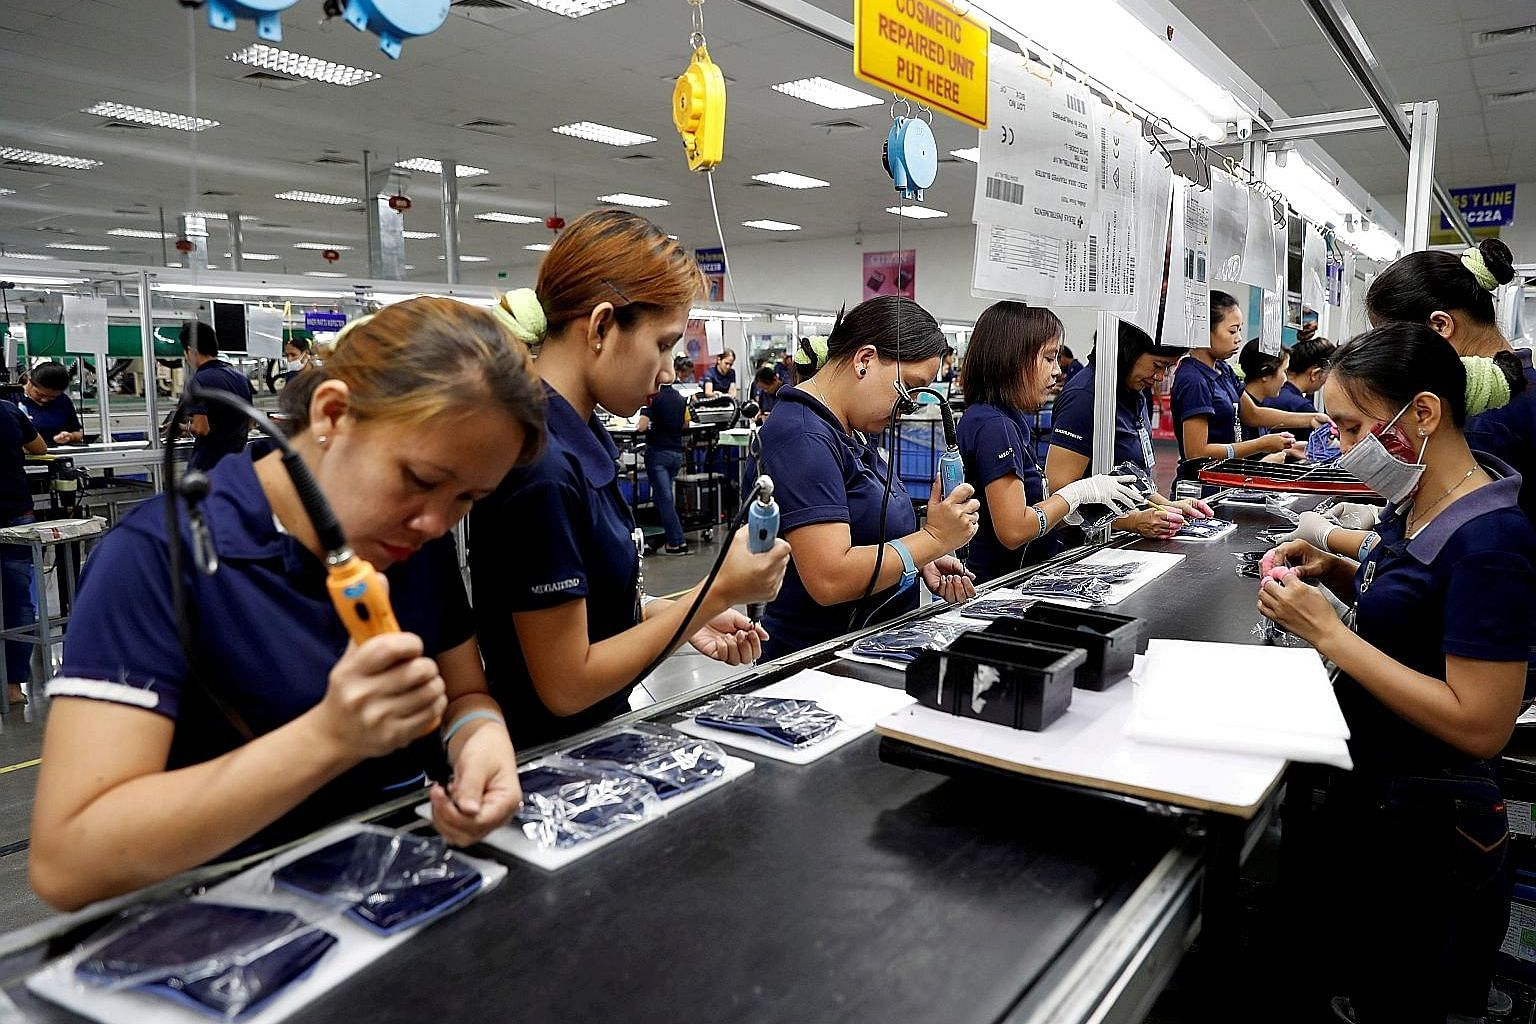 Given Asia's heavy reliance on electronics exports, observers like ING Asia economist Prakash Sakpal expect the jitters to continue for regional exporters and markets.